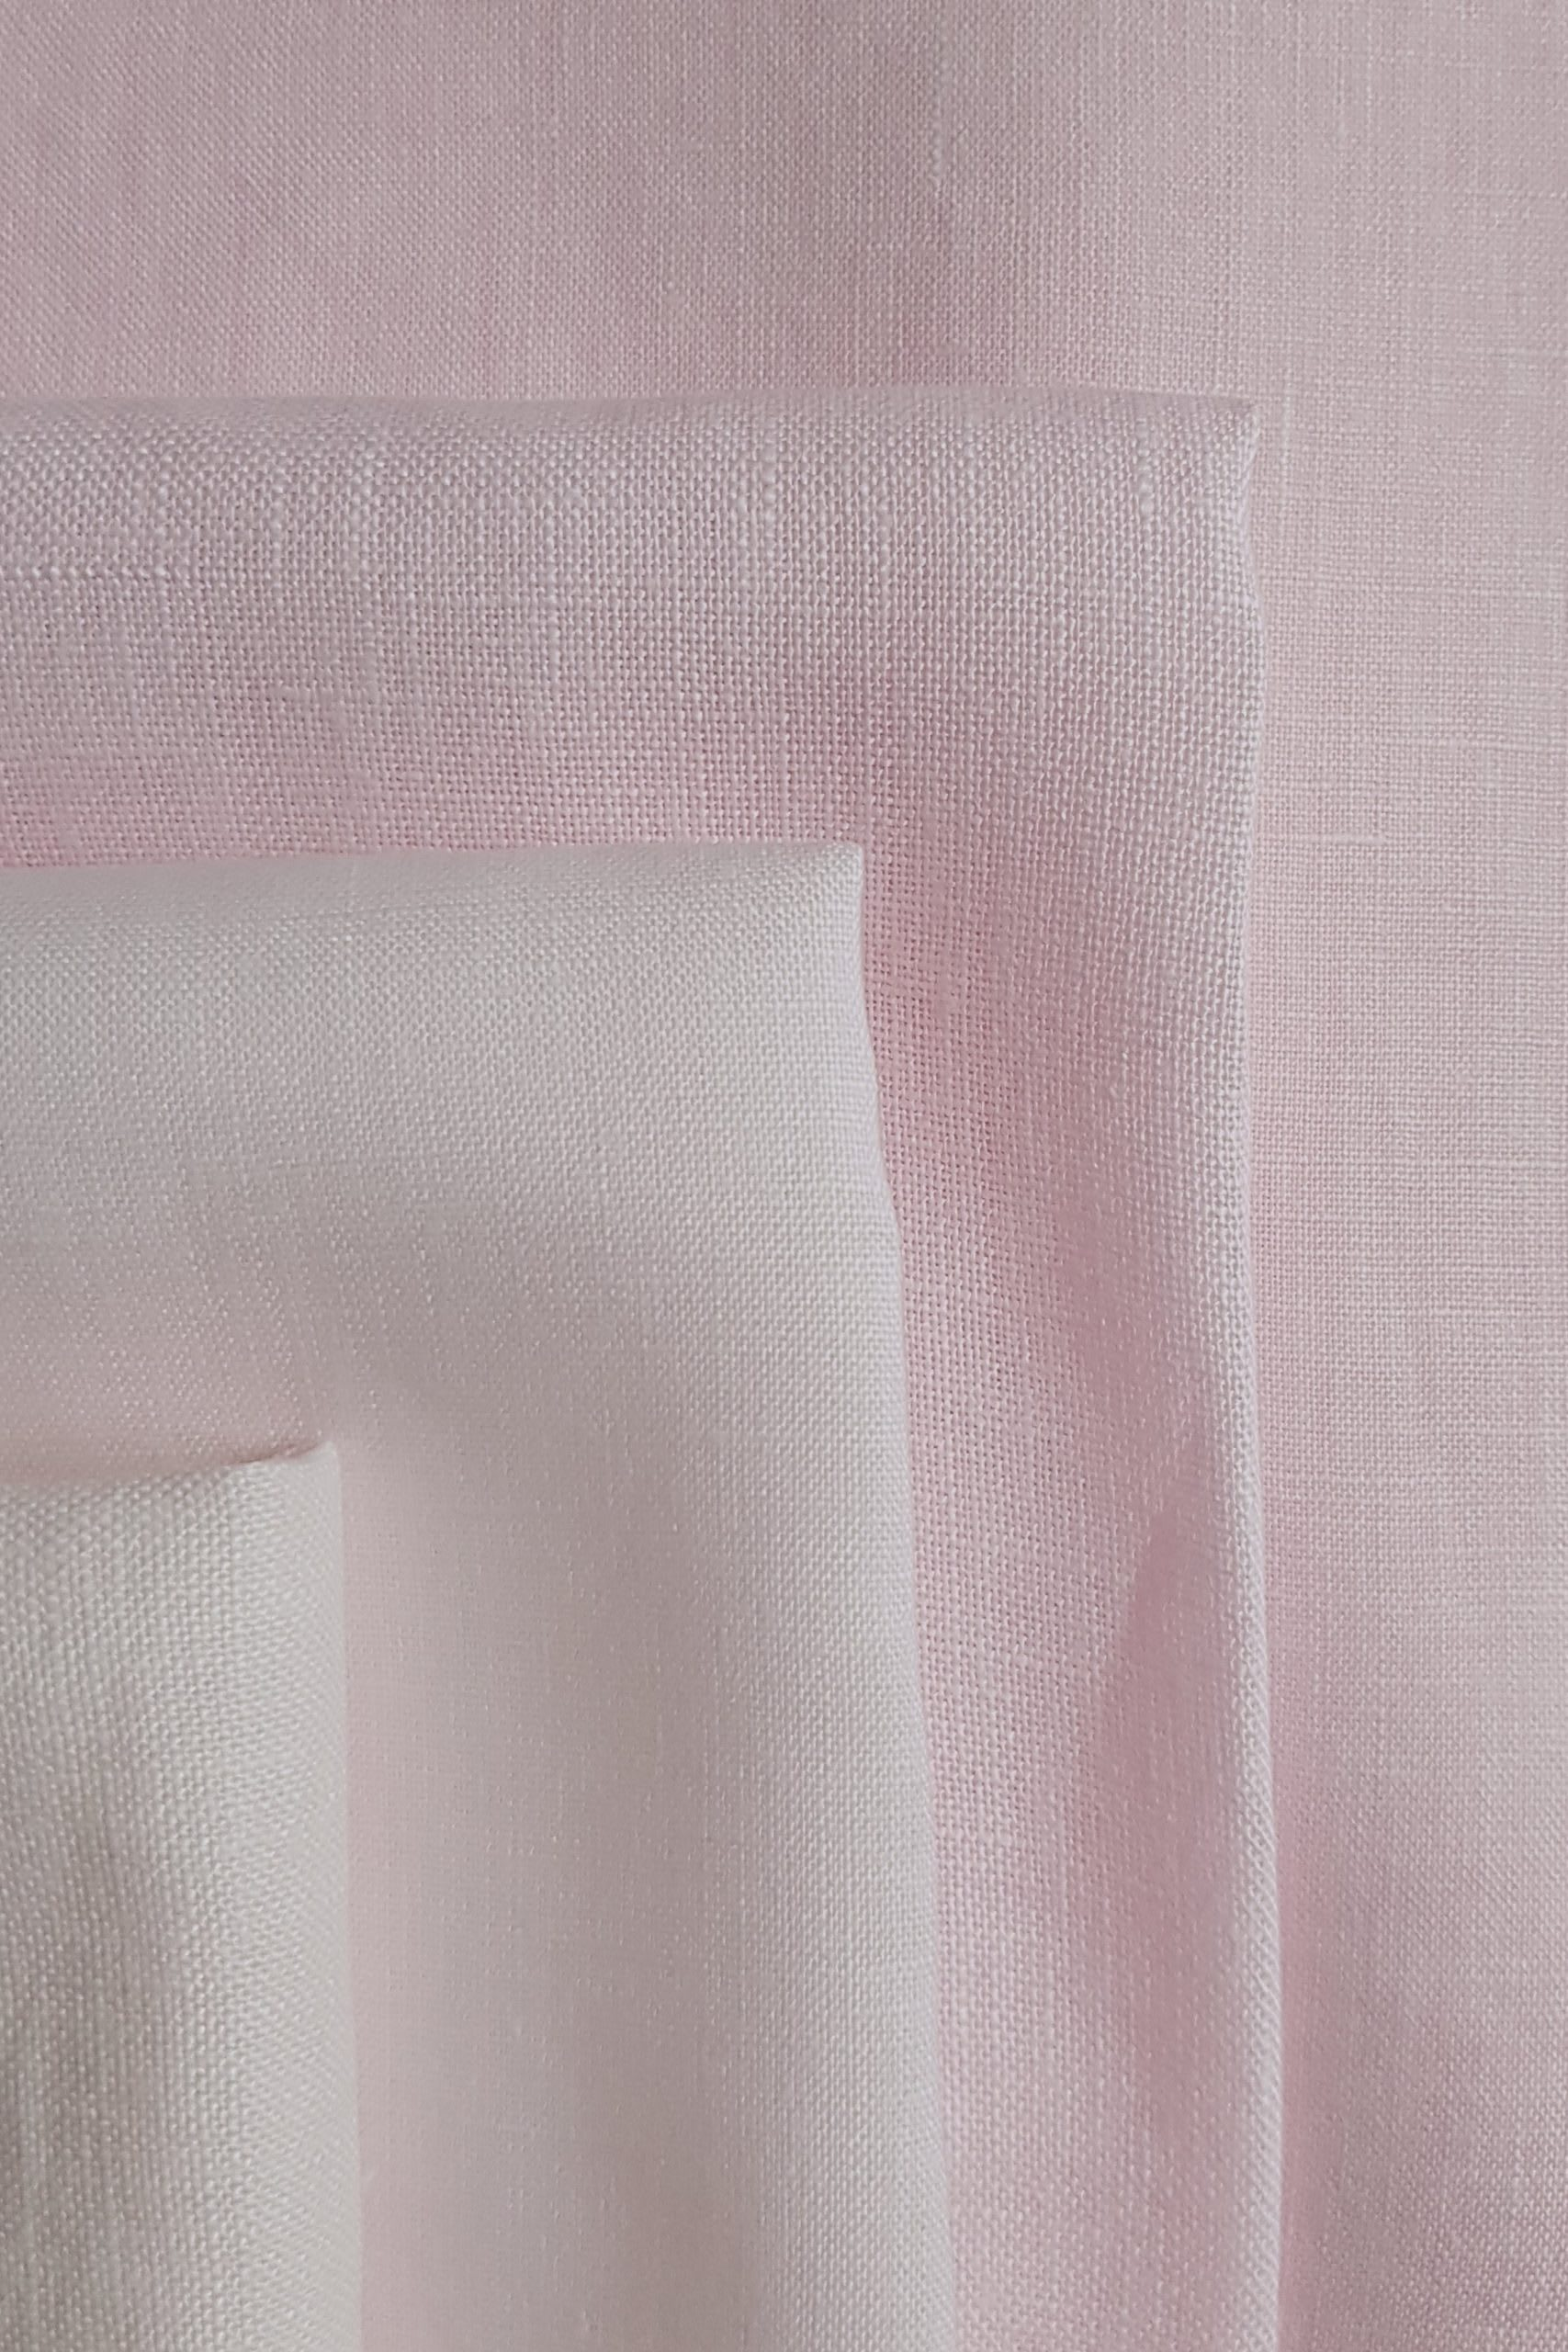 shades of Dylon peony pink on Cut Couture linen hand dyed